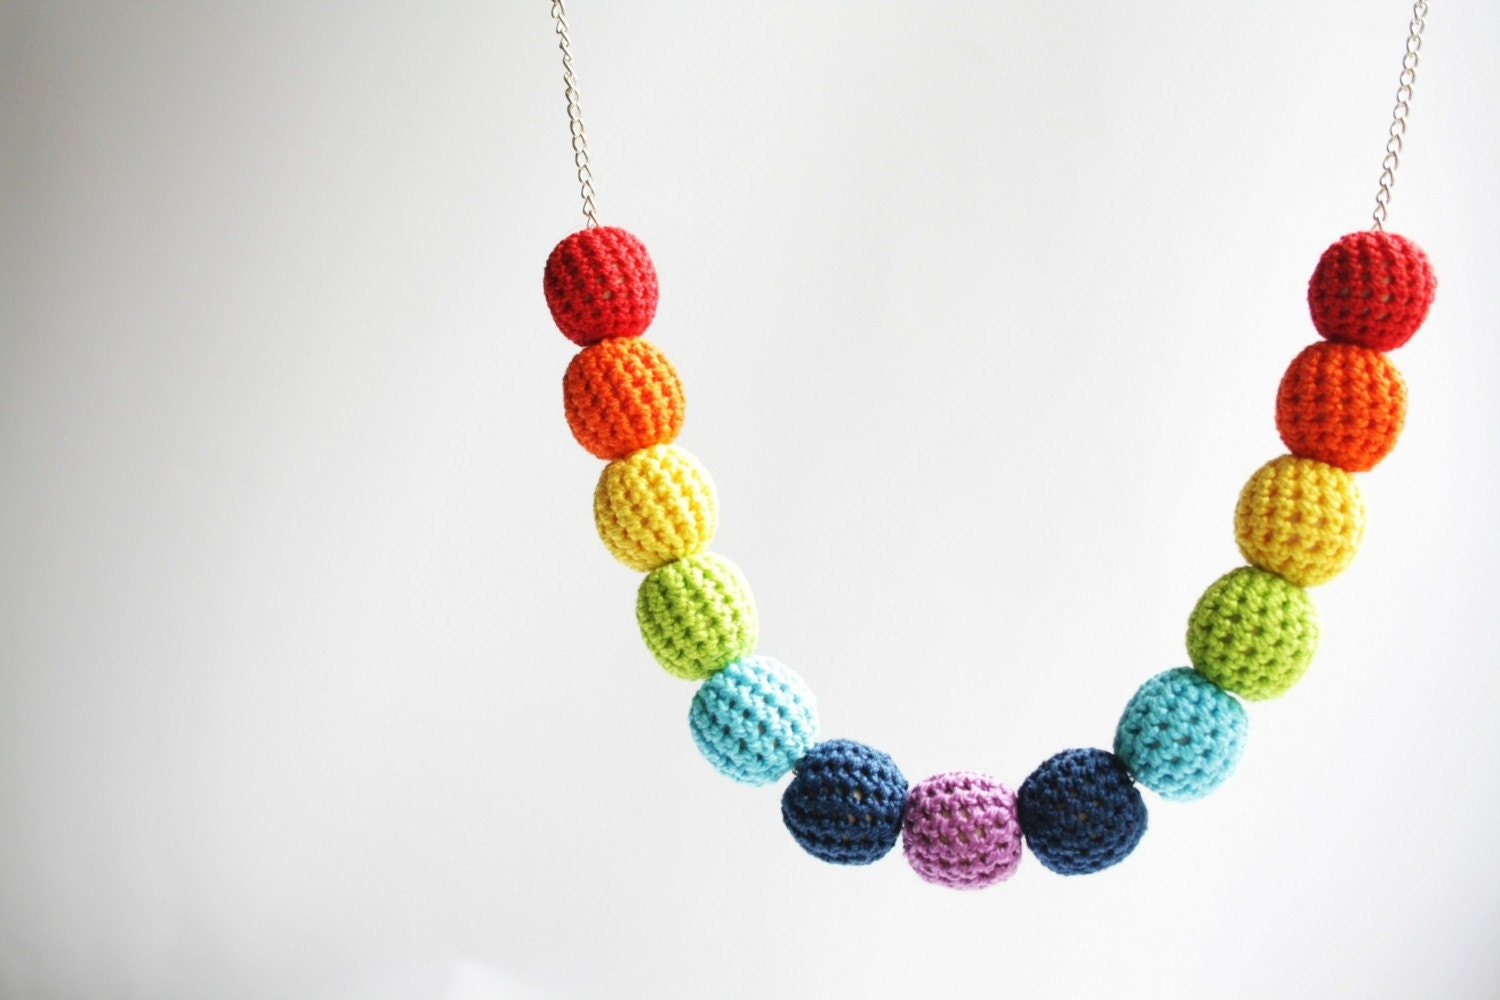 crochet rainbow spring time bead necklace - handmade colorful funky beaded necklace with brass chain, boho style, gift for her - XauXau